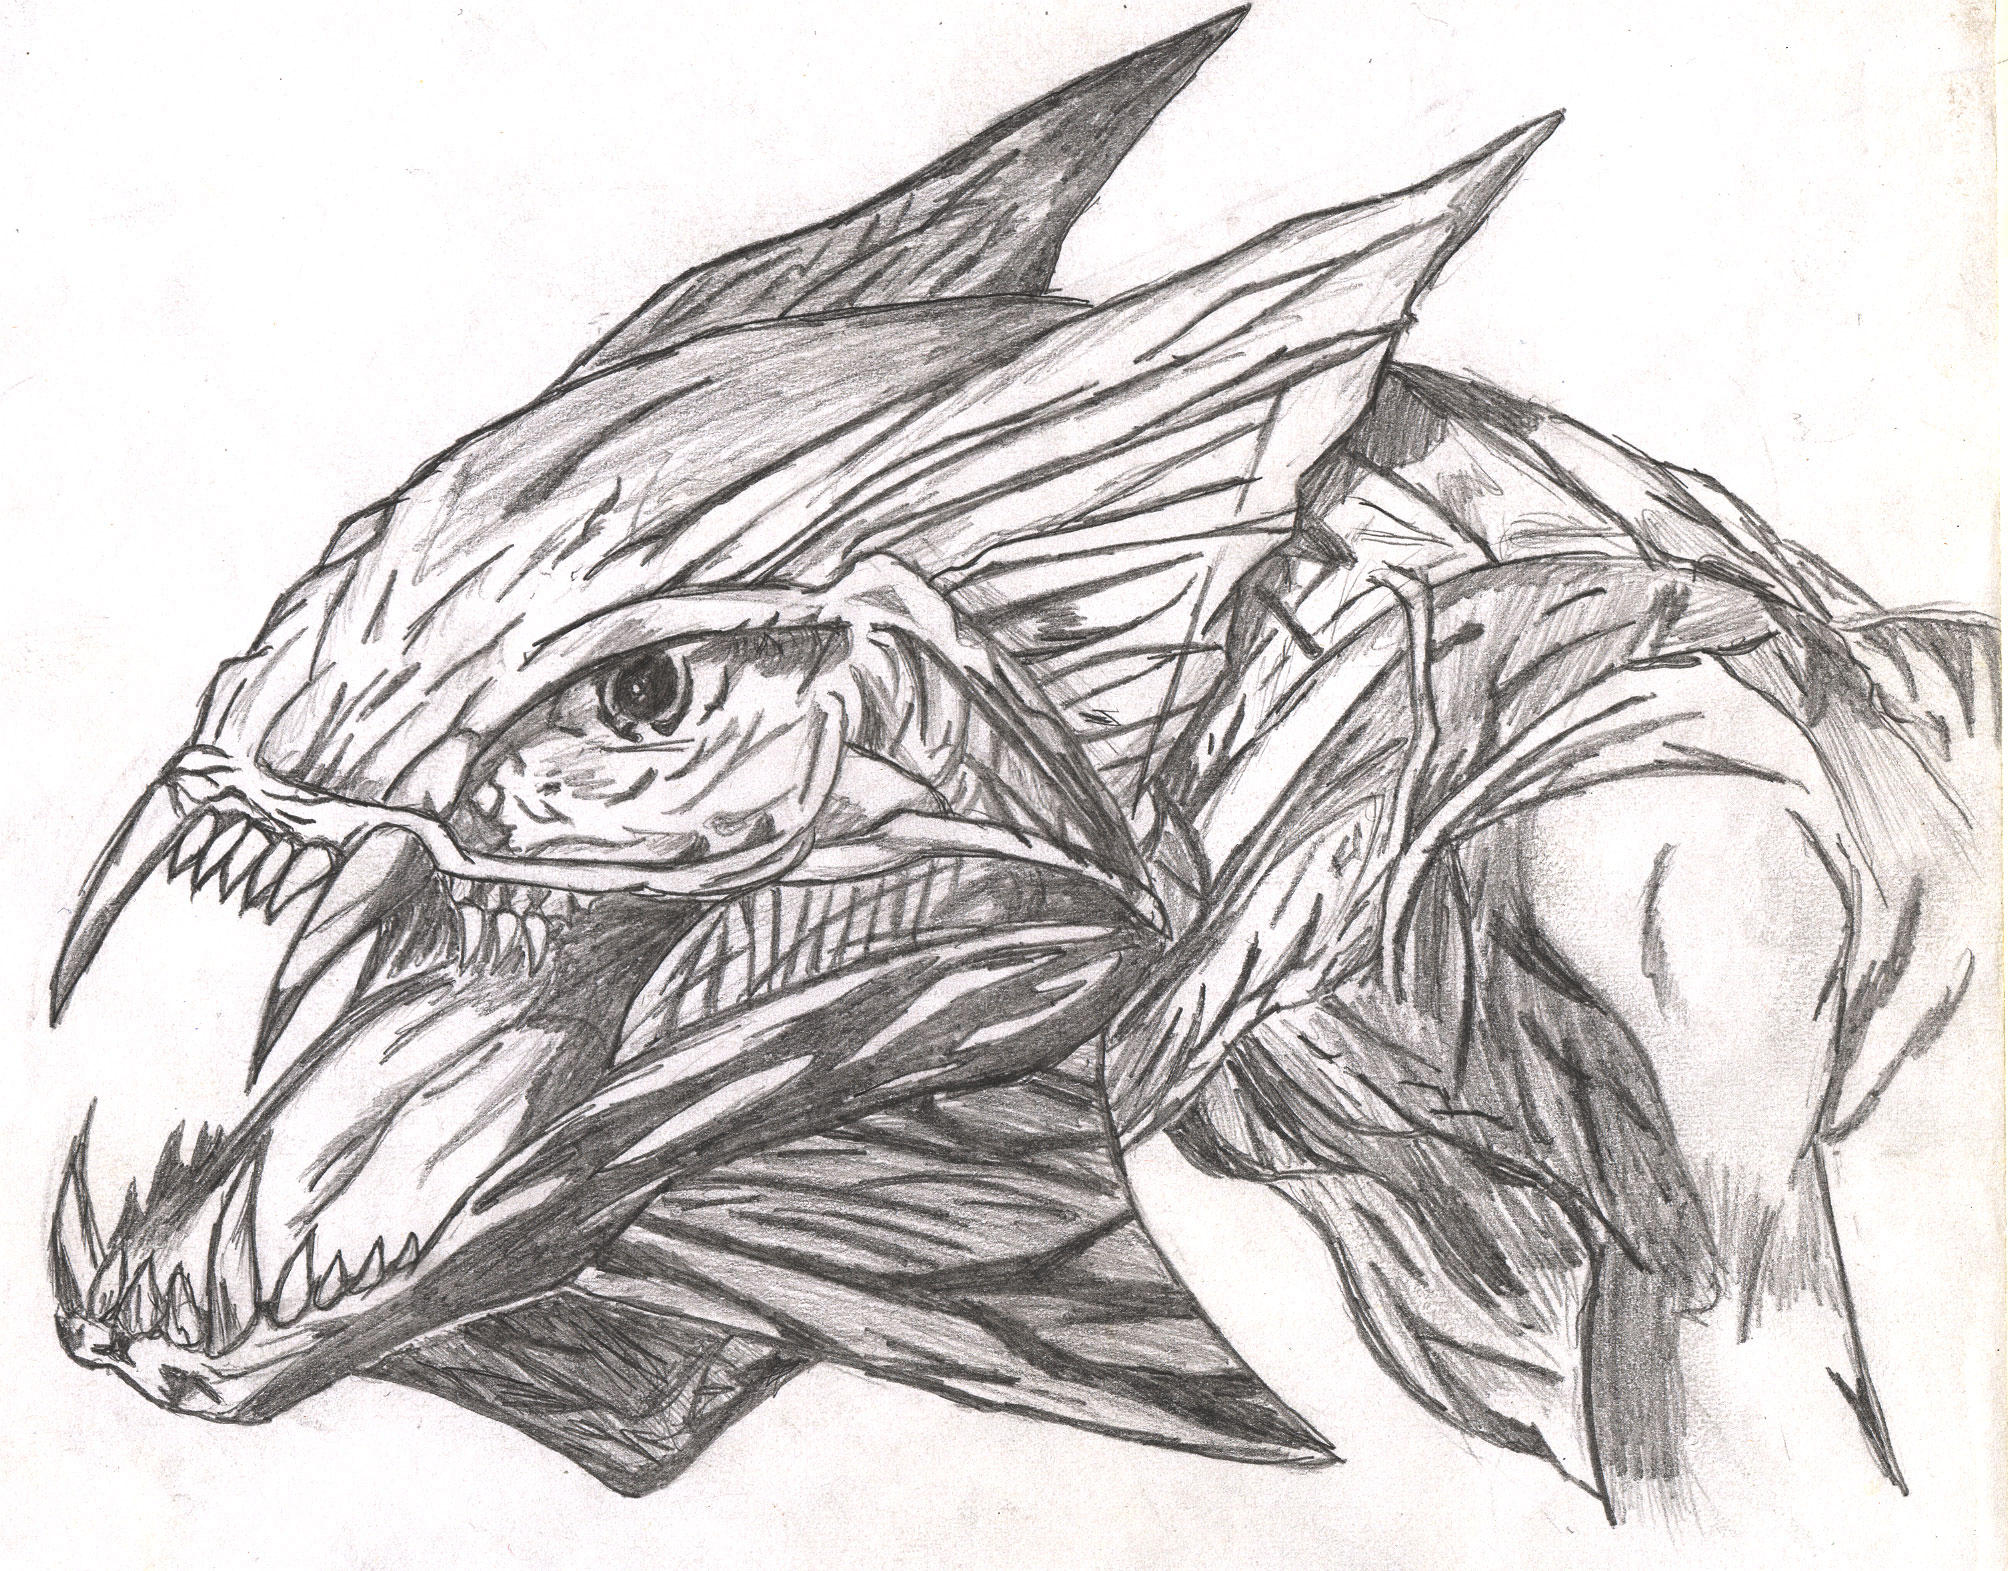 Dragon head sketch by Avantasian on DeviantArt